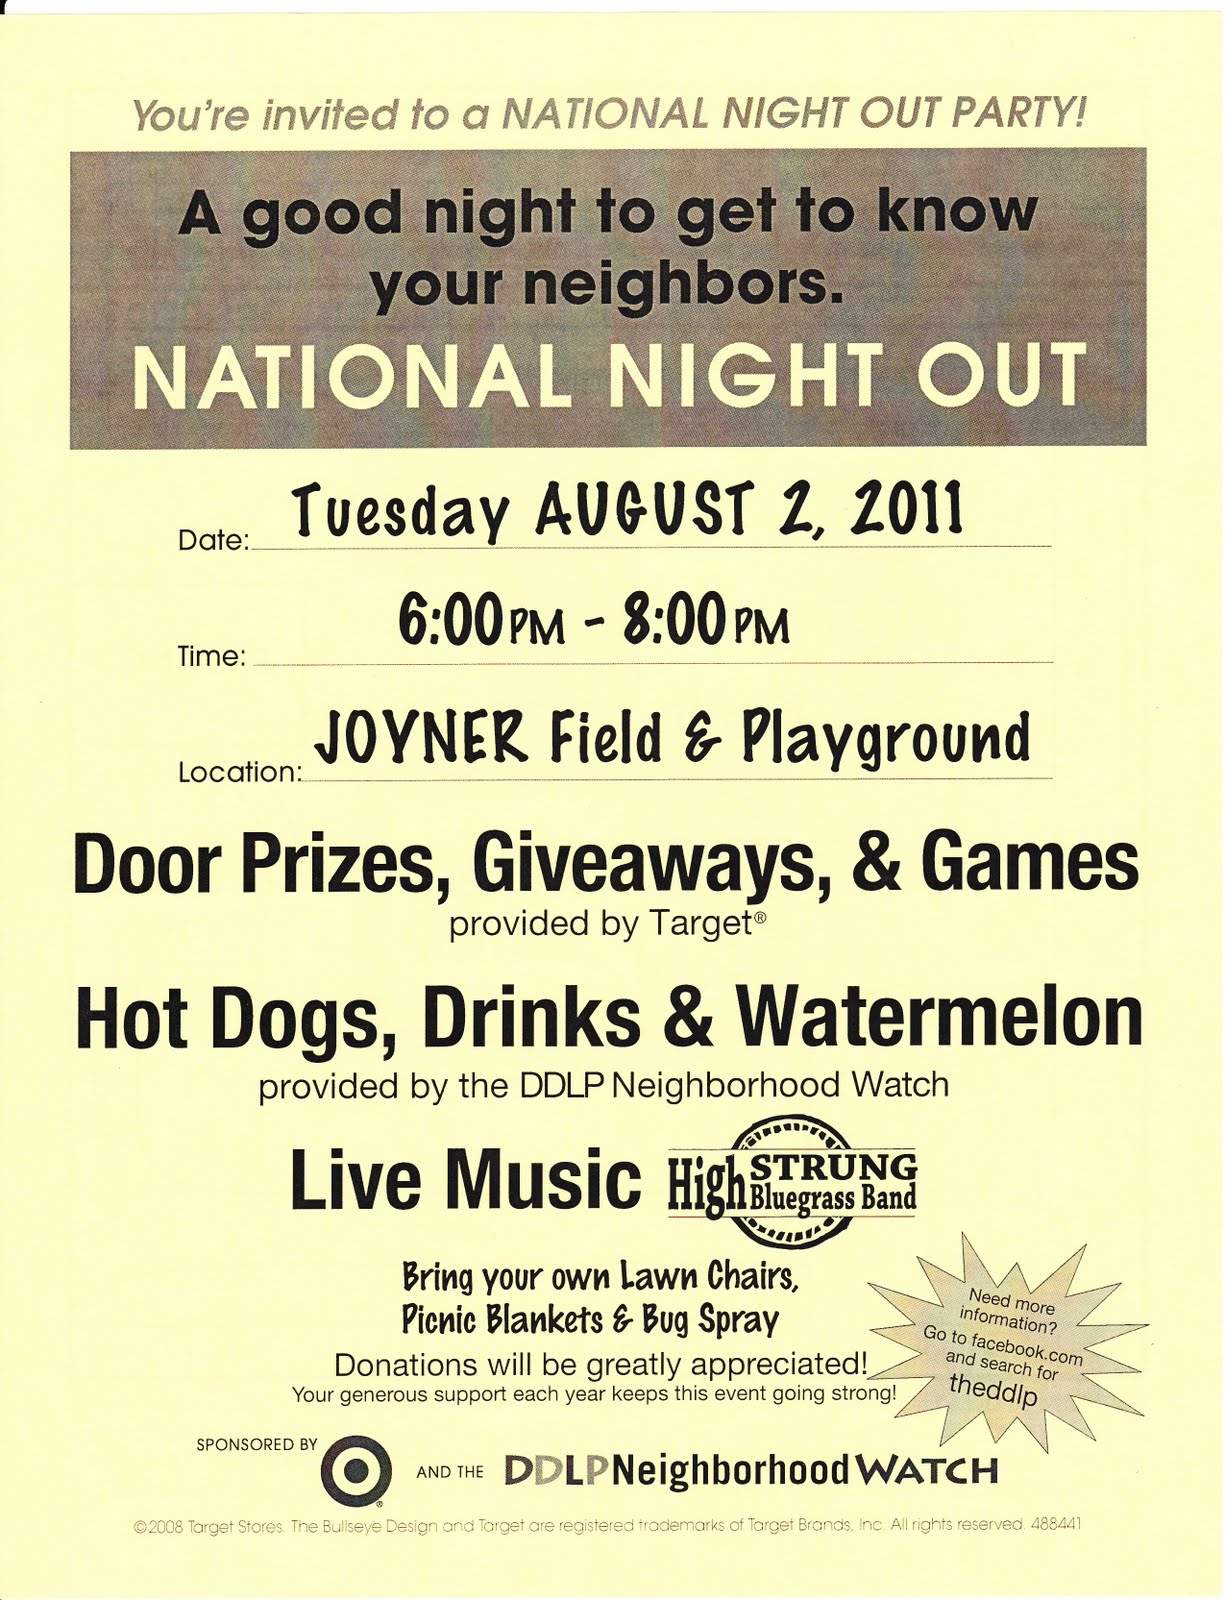 TheDDLP Neighborhood Watch Blog: 4th annual National Night Out flyer